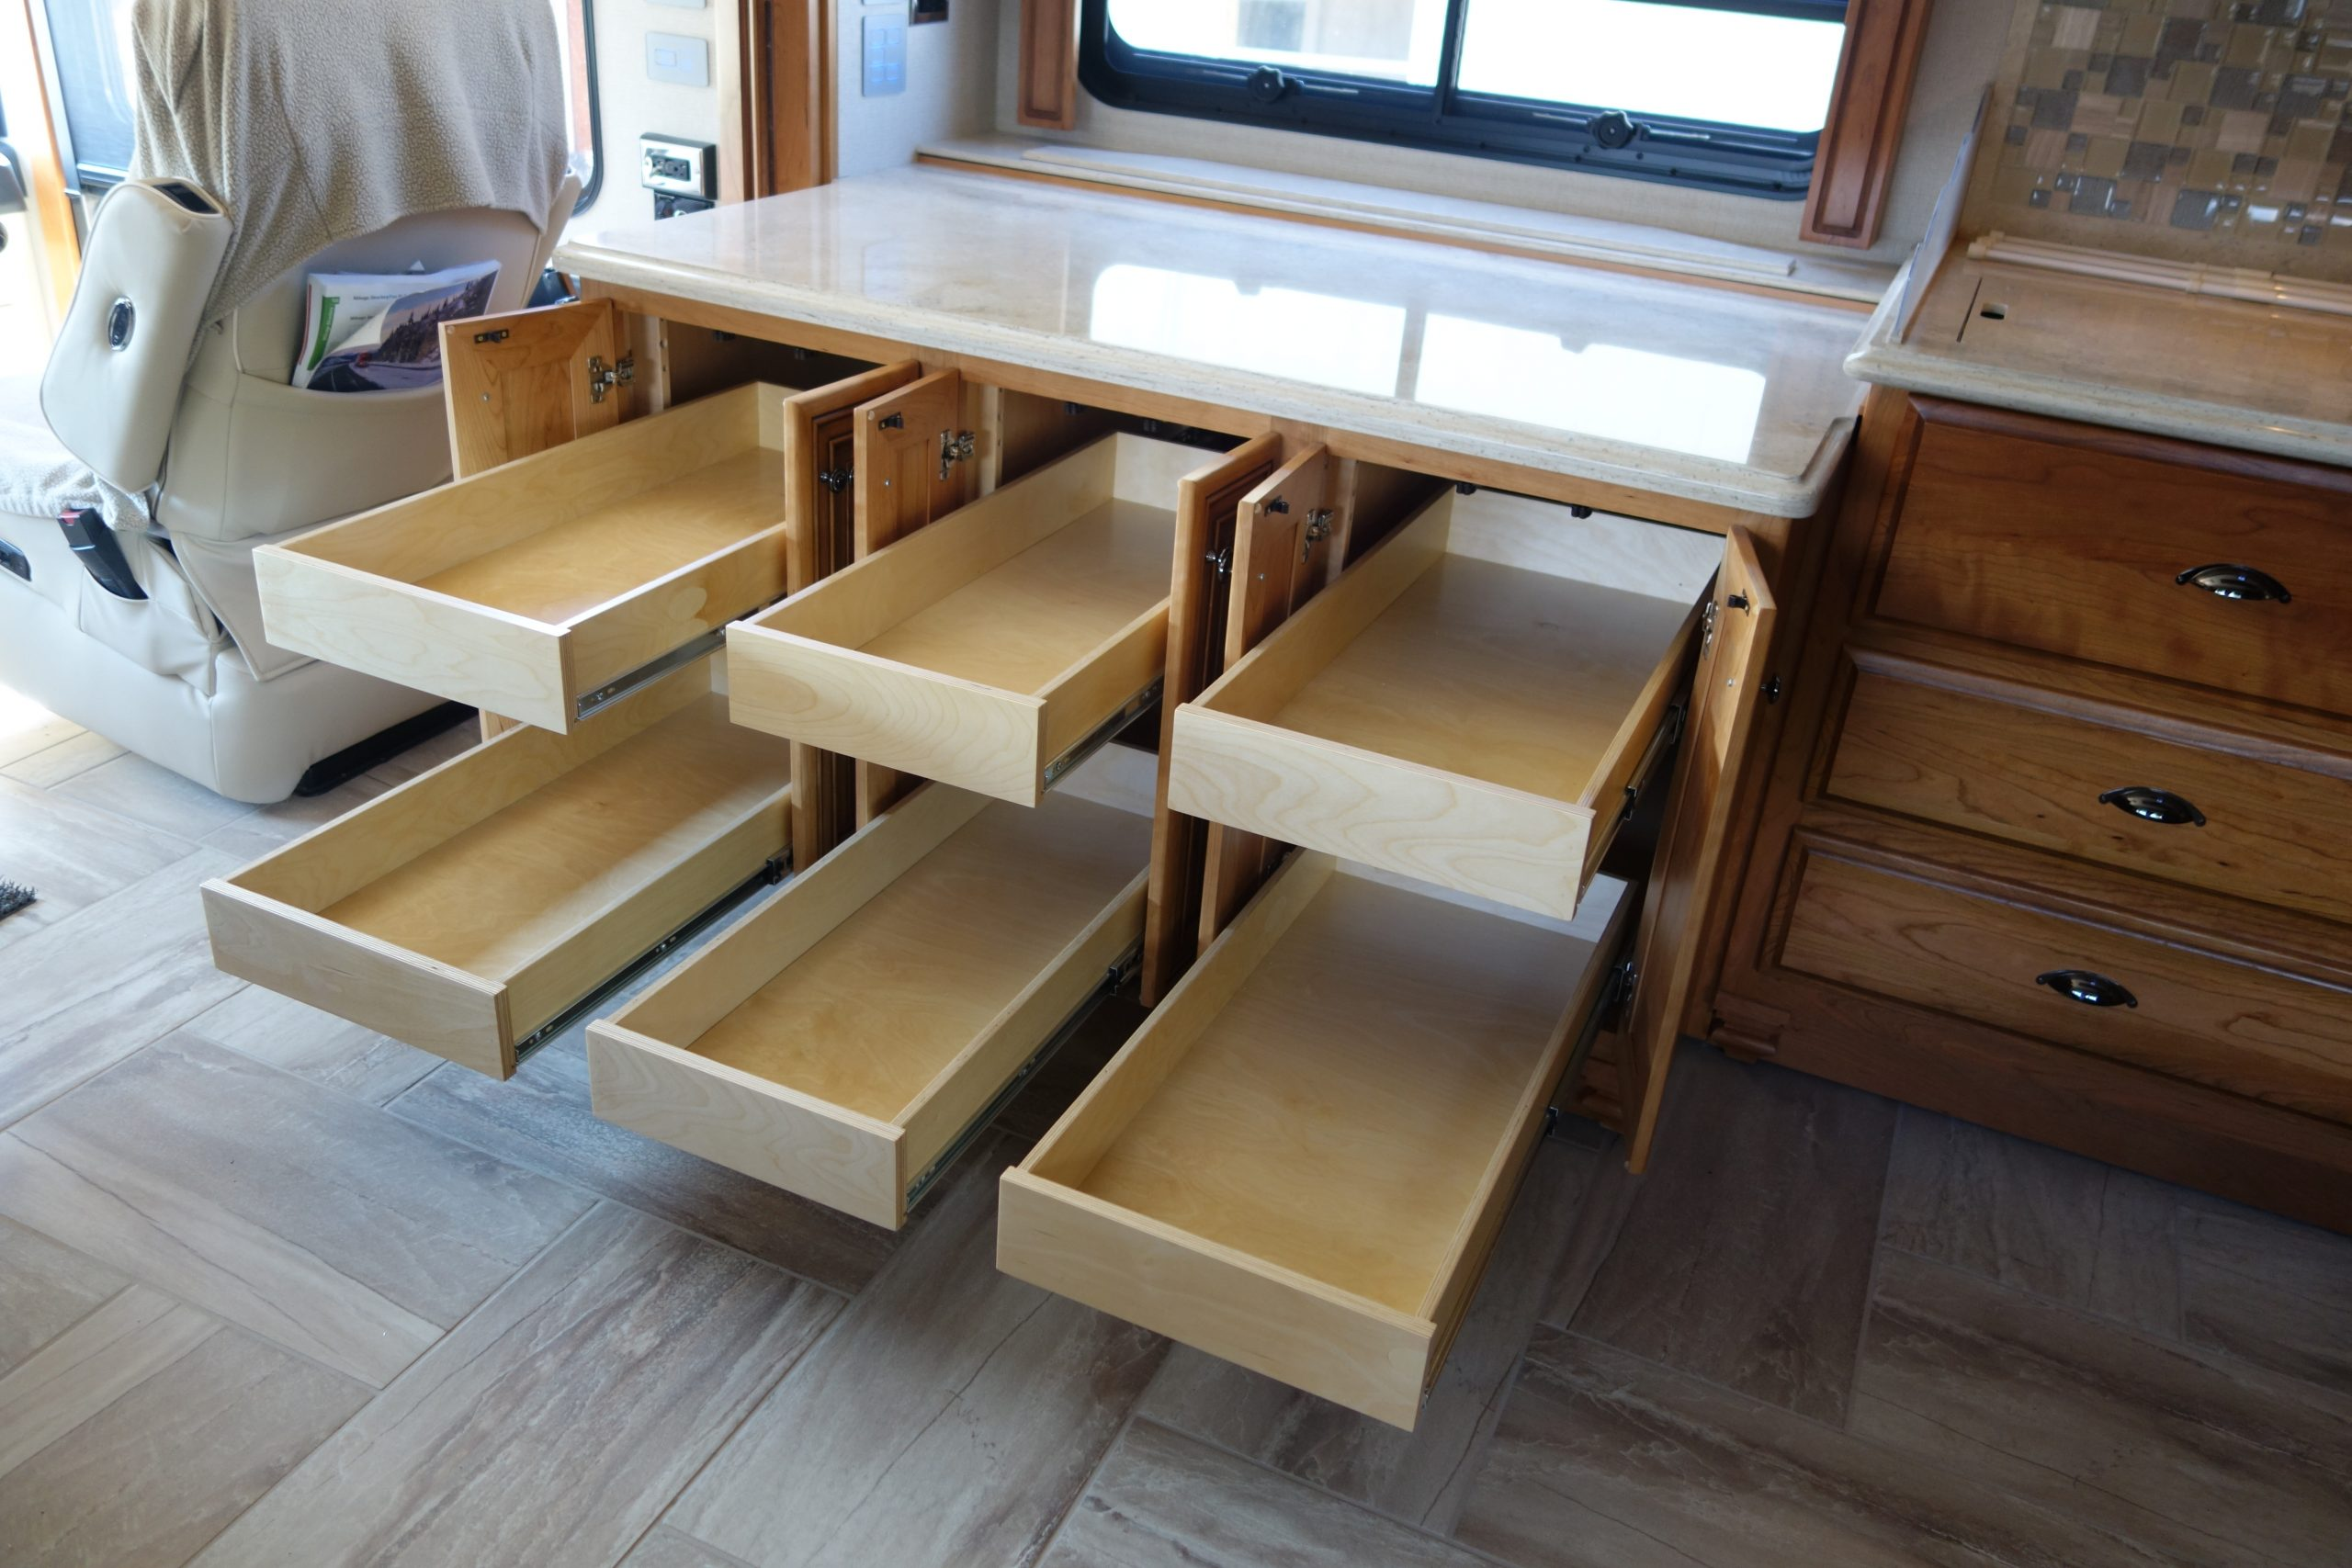 Custom cabinets with pullout drawers opened